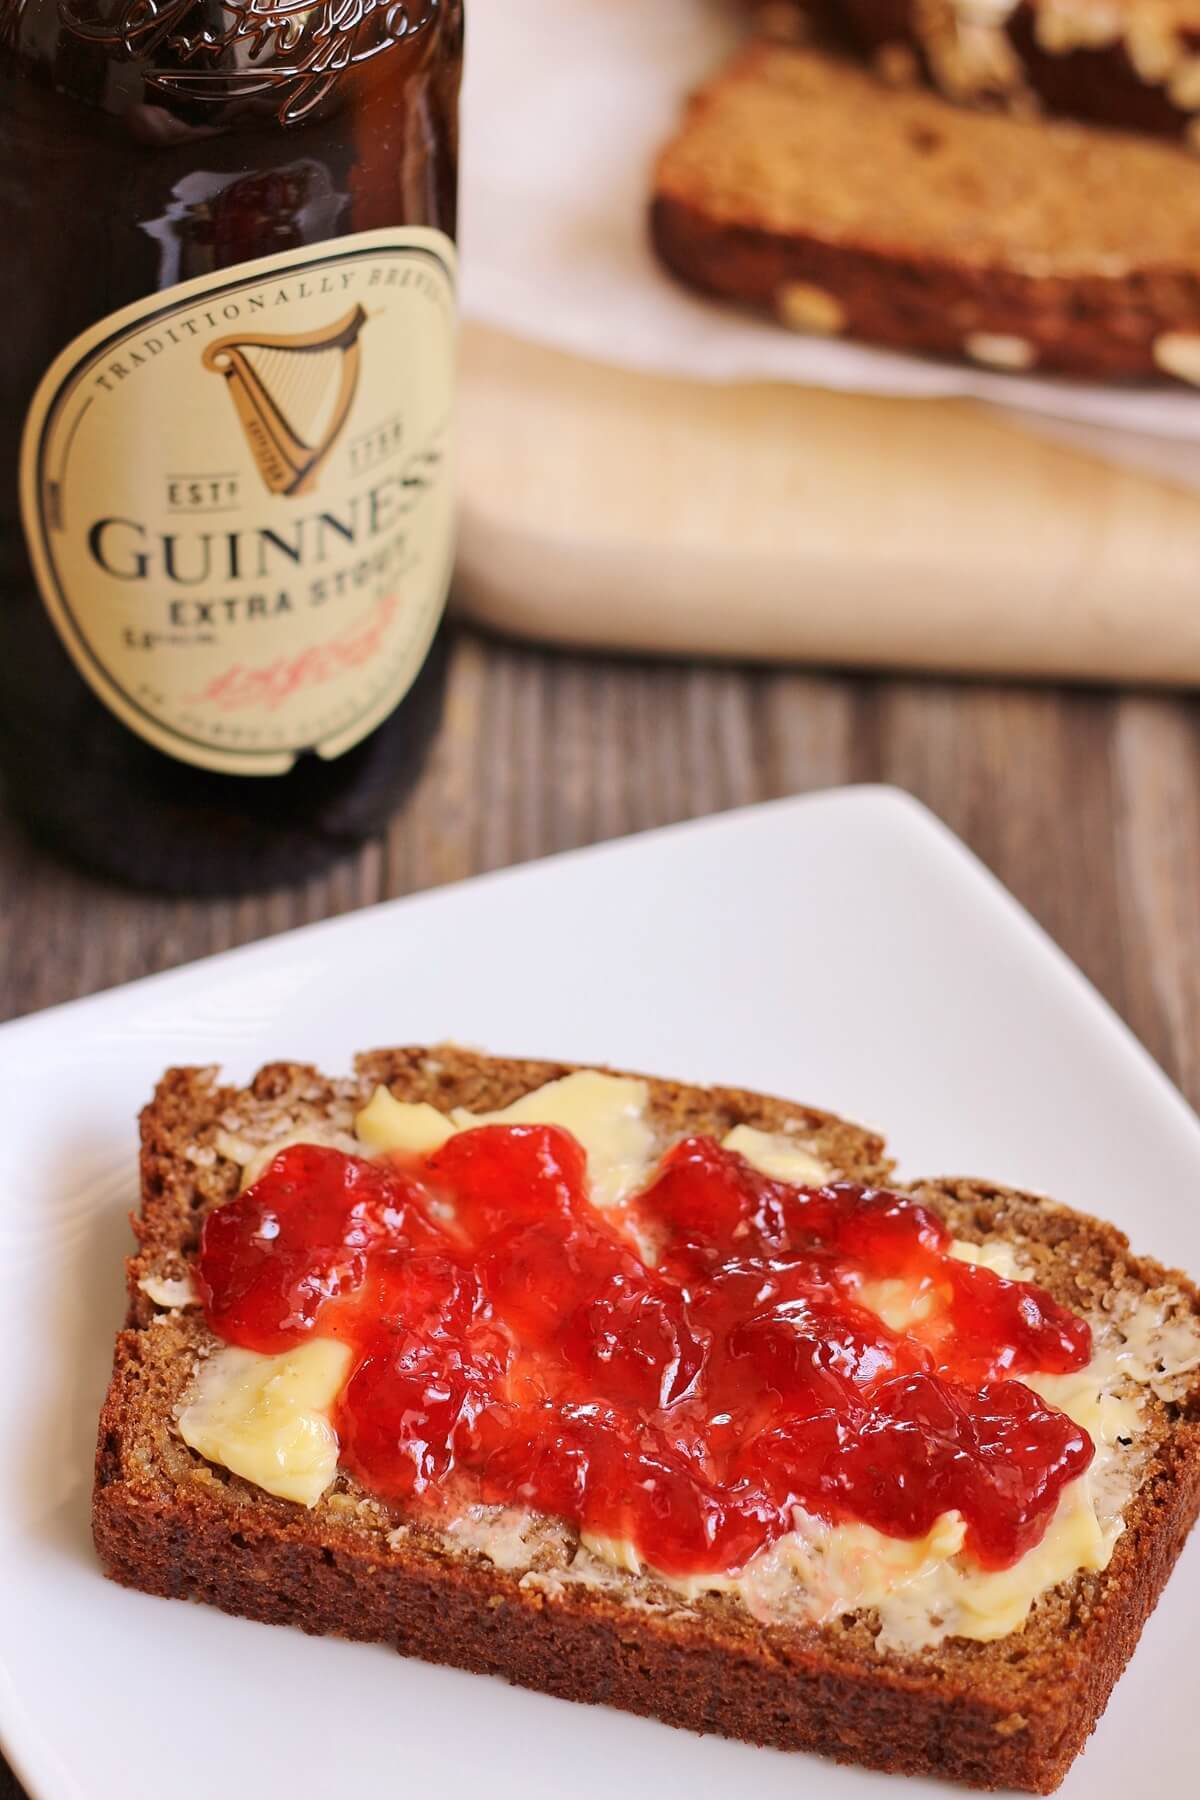 closeup of a slice of Irish Guinness brown bread with butter and jam